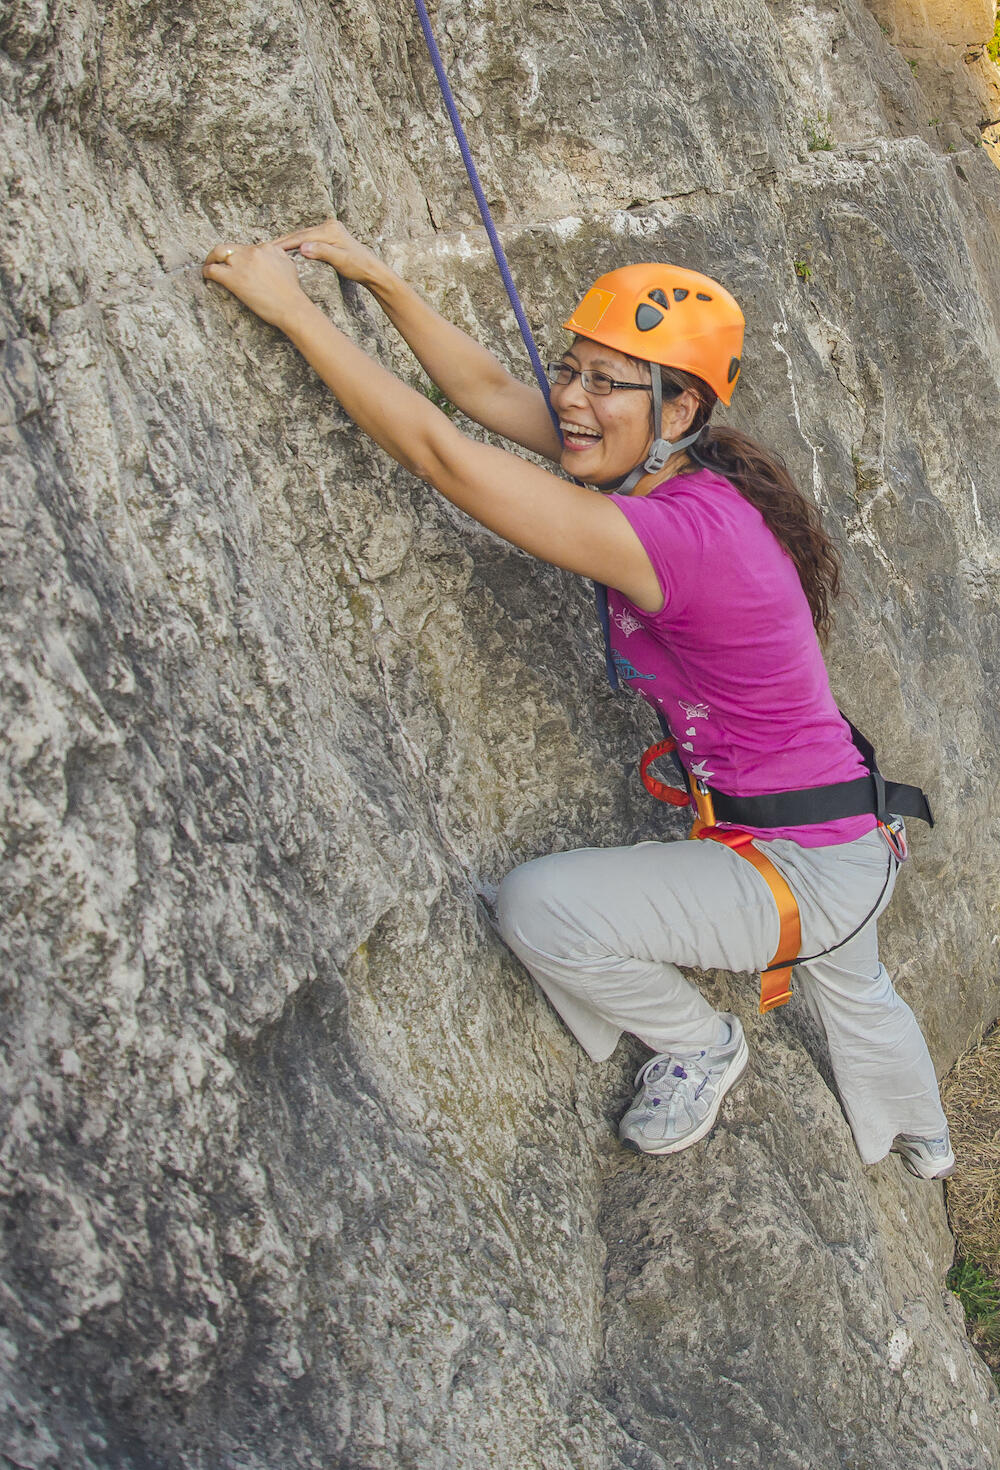 Woman with big smile rock climbing